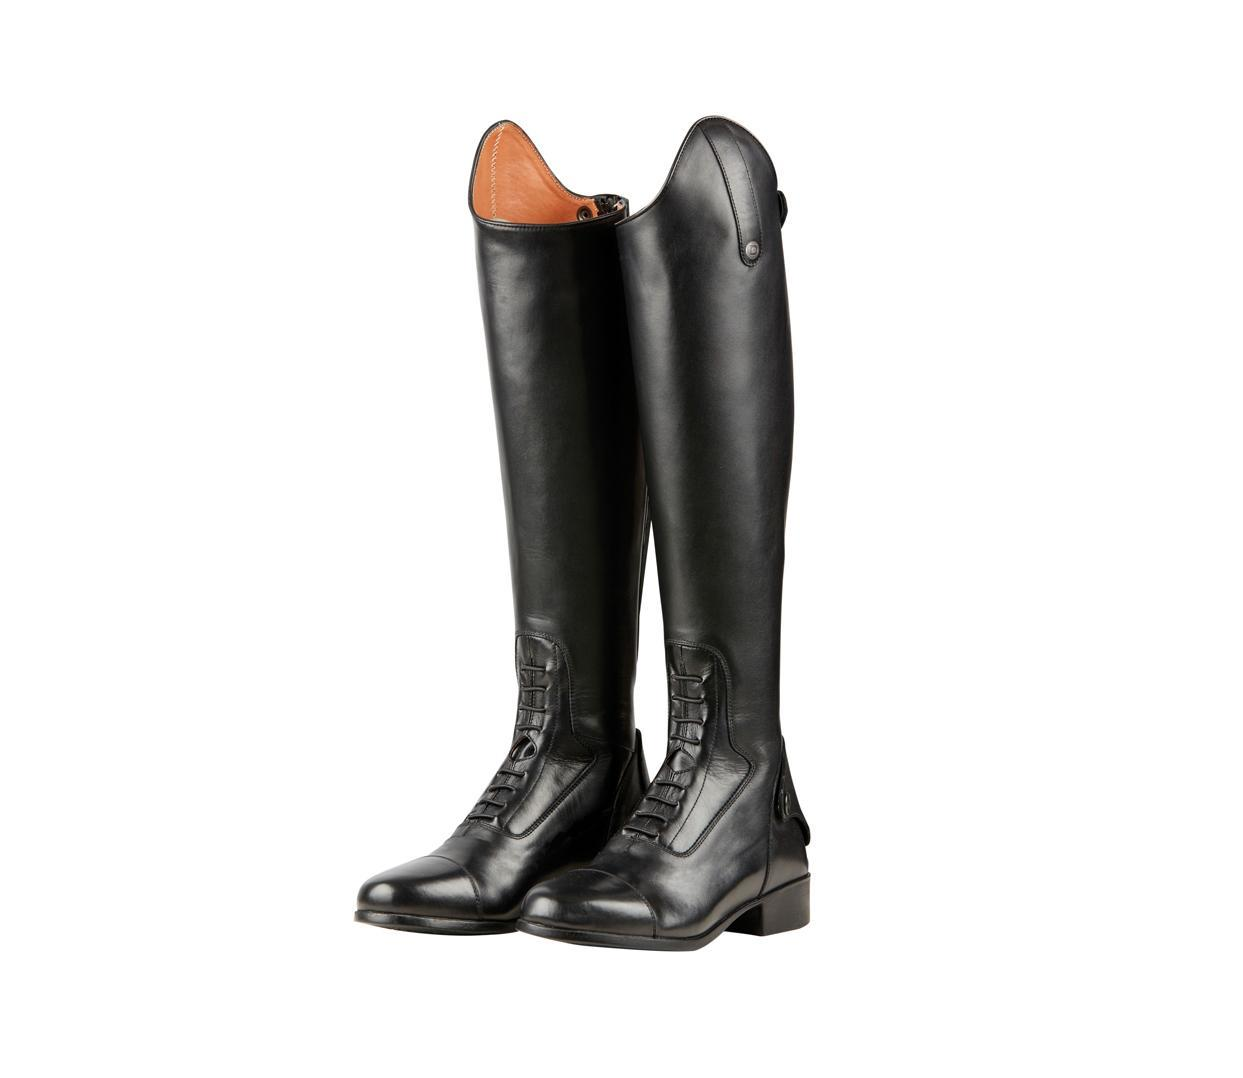 galtymore-tall-field-boots-black-594803